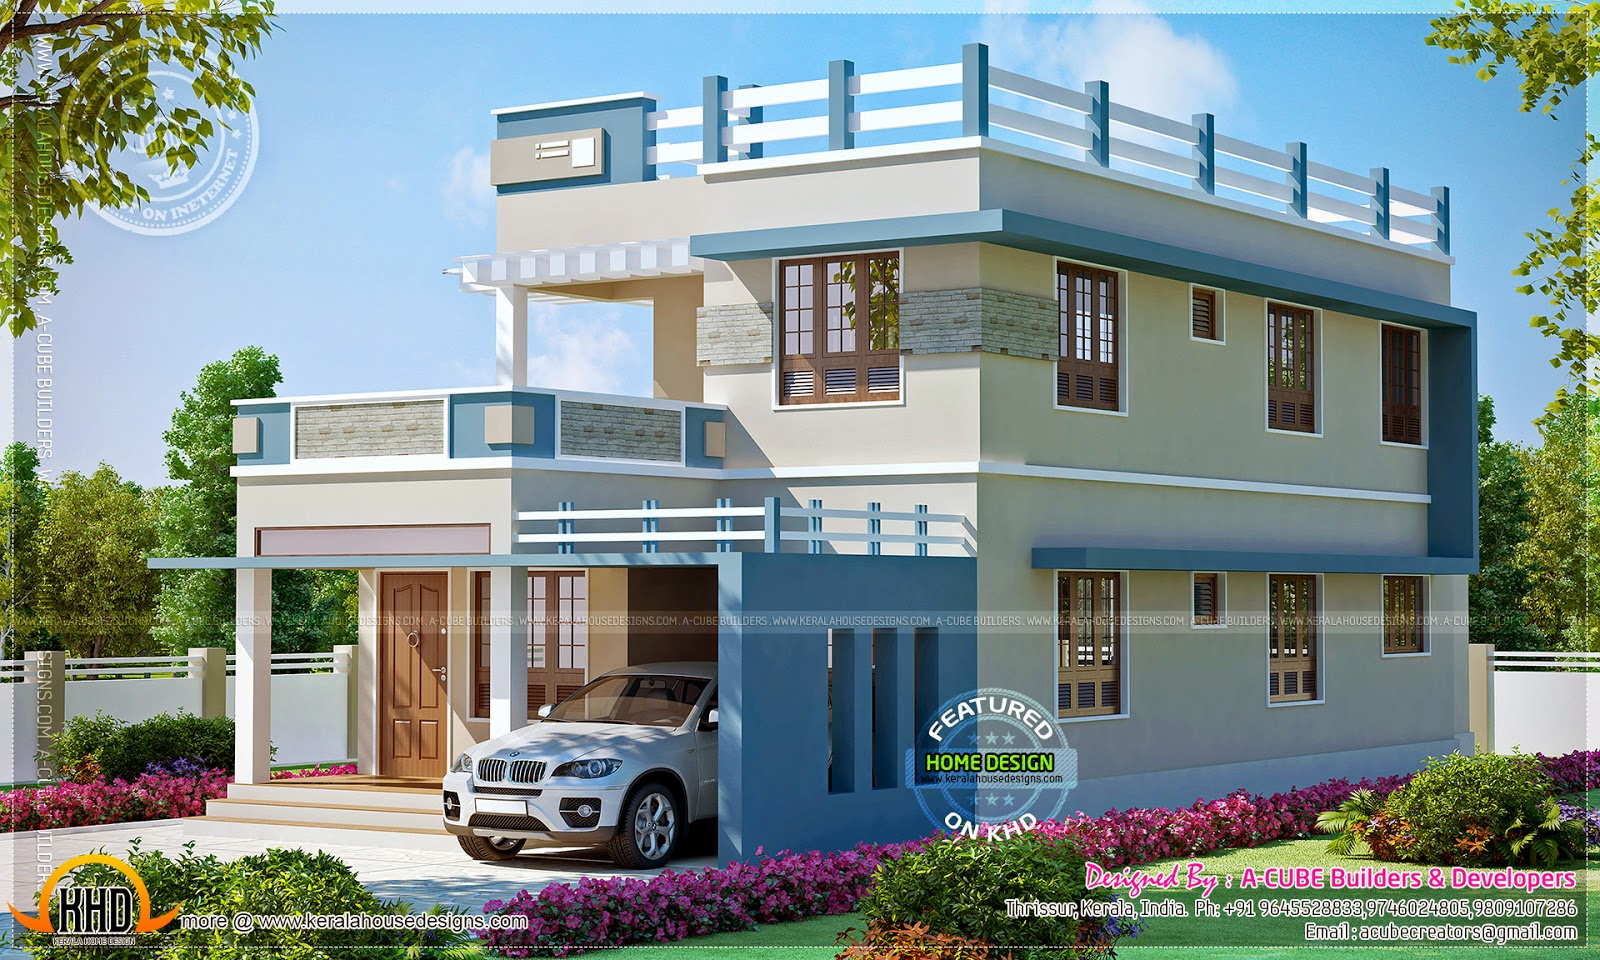 2260 square feet new home design kerala home design and floor plans - New homes designs photos ...